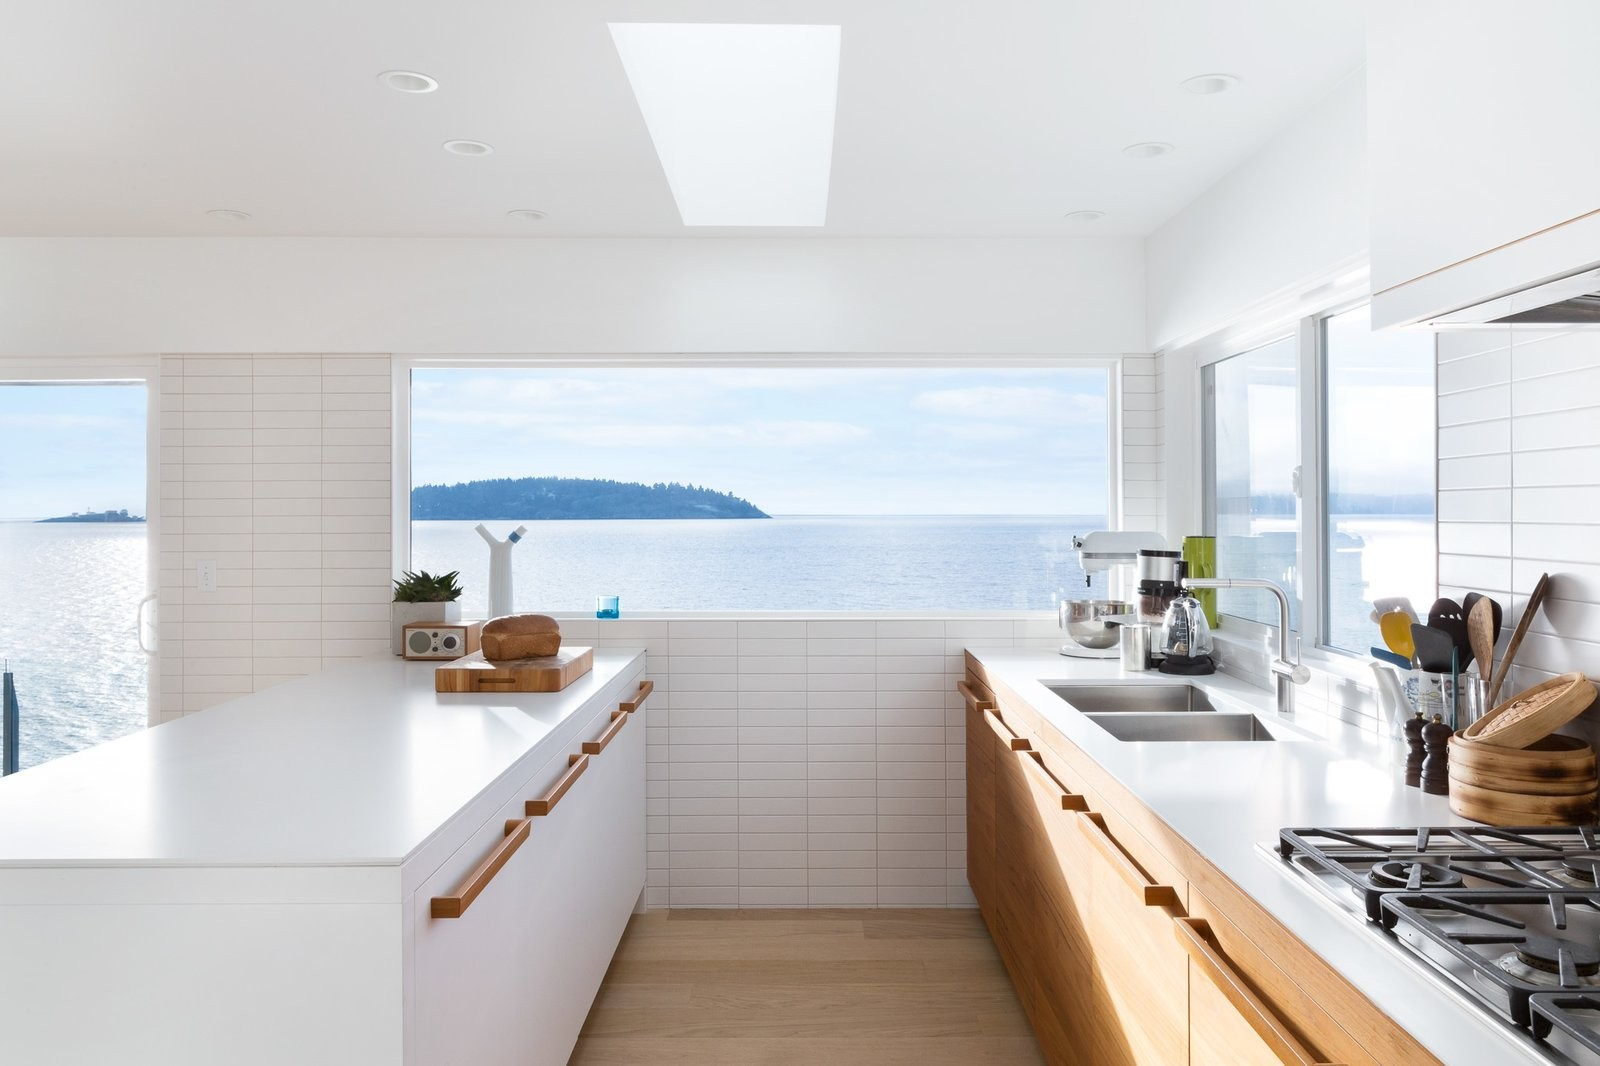 a-young-vancouver-family-asked-falken-reynolds-interiors-to-convert-their-waterfront-vacation-home-on-british-columbias-suns...